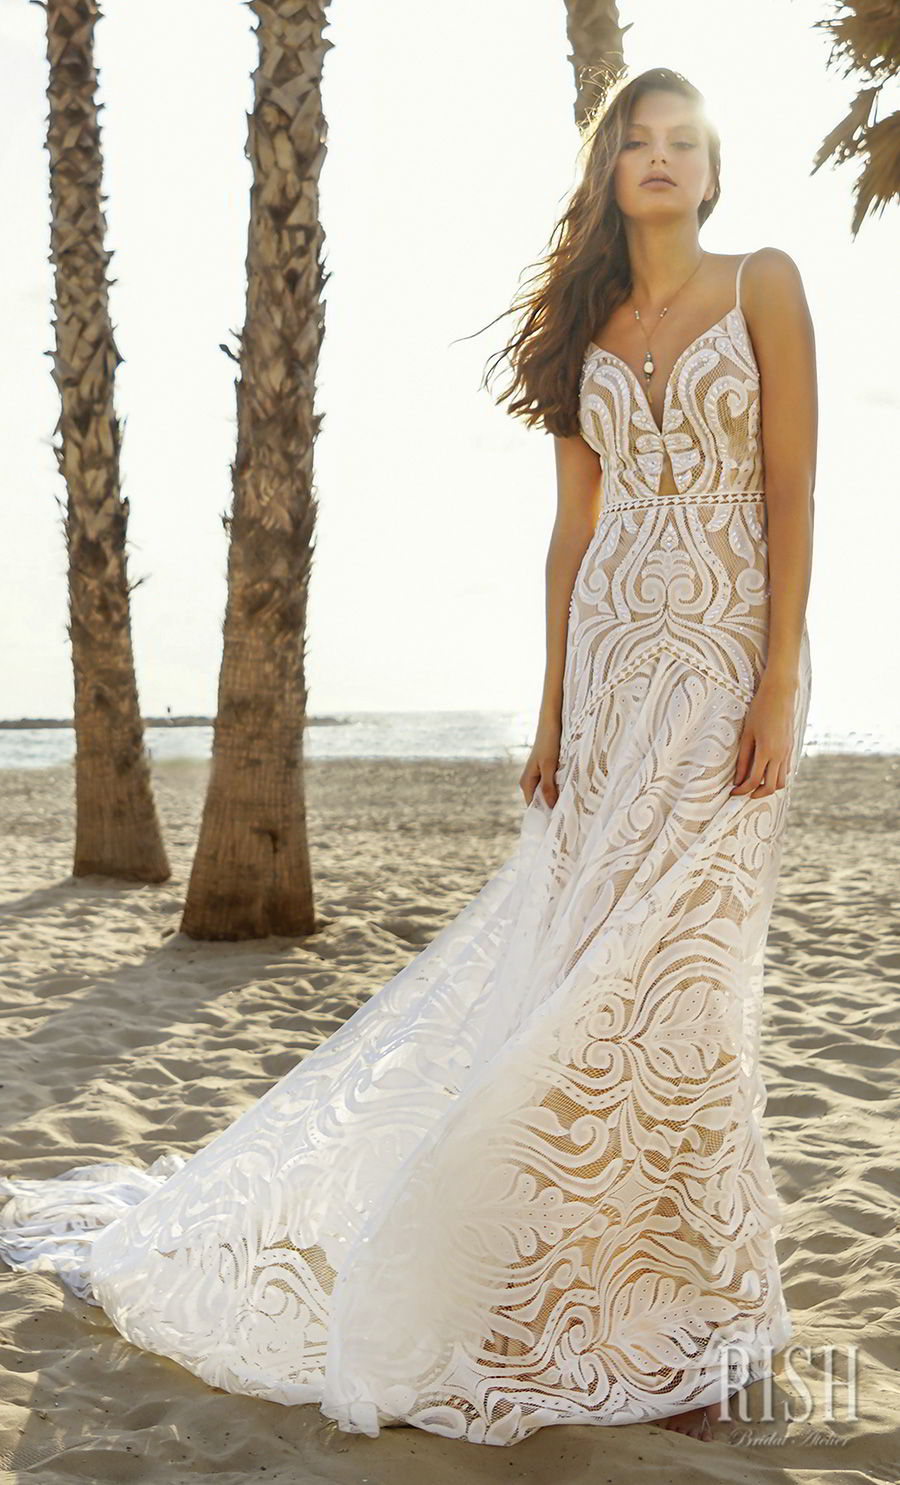 rish bridal sun dance 2018 sleeveless spaghetti strap deep sweetheart neckline full embellishment bohemian glamorous sheath fit and flare wedding dress v back chapel train (victoria) mv